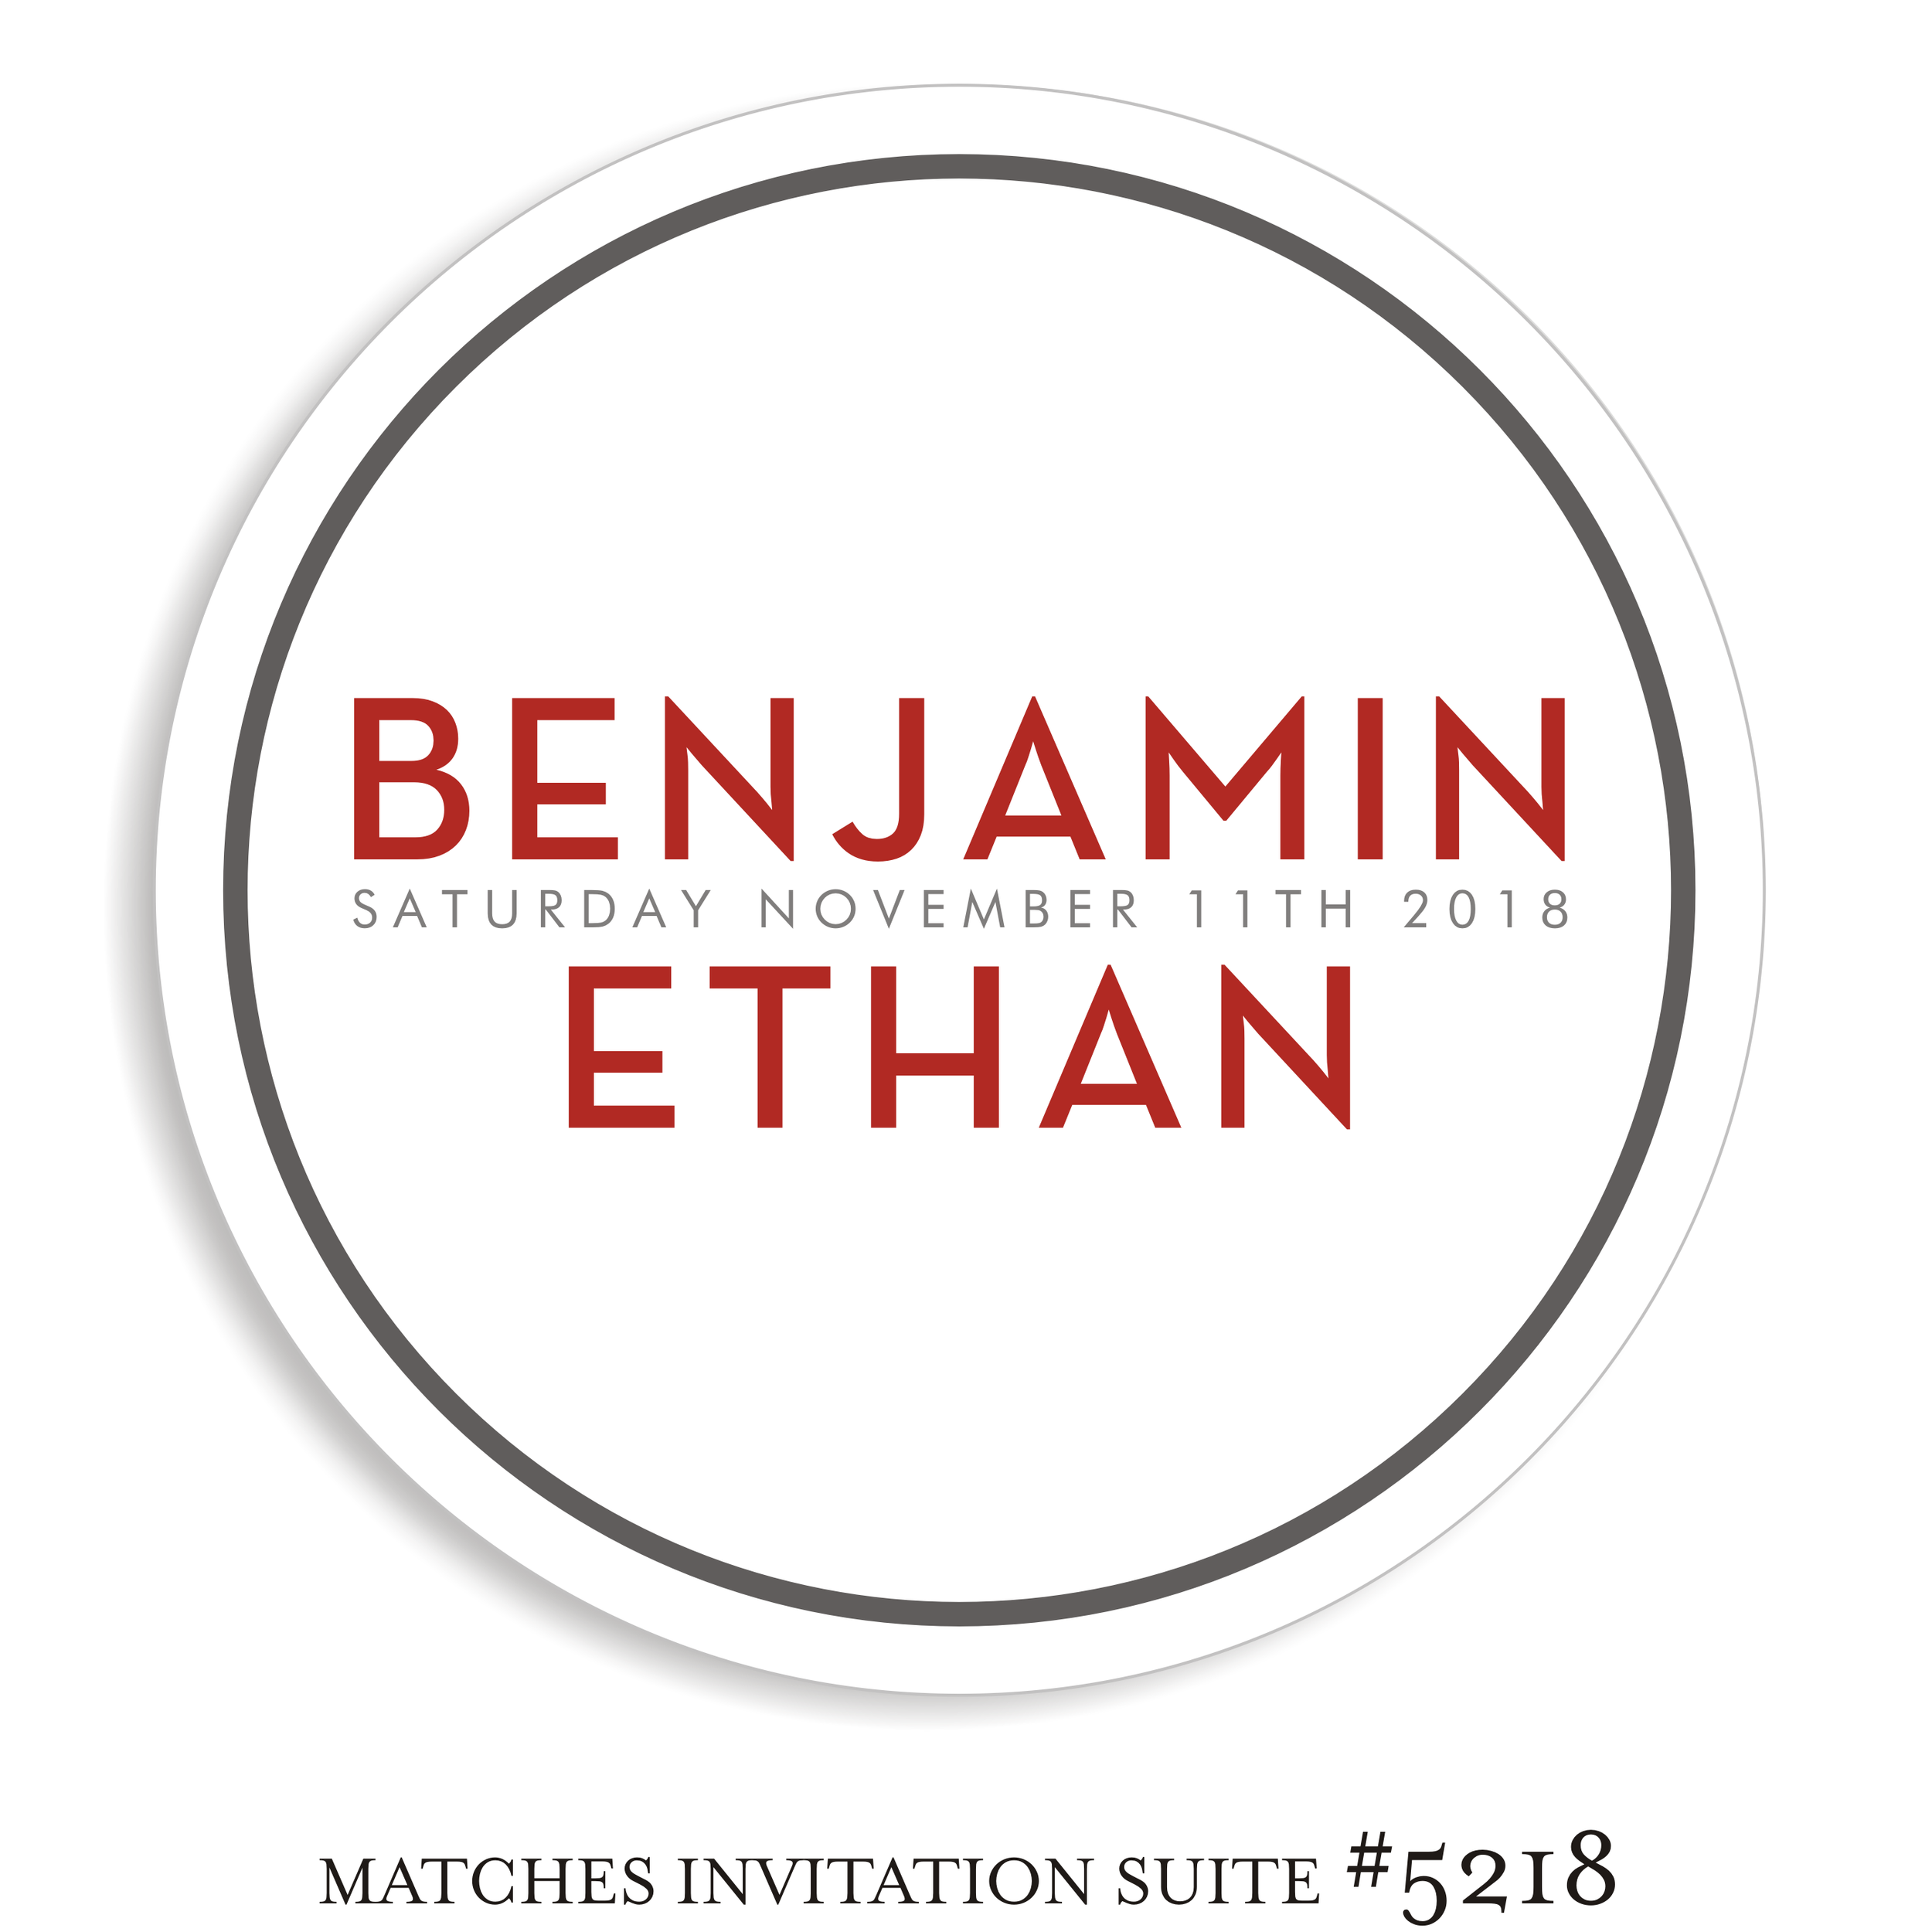 Dancefloor Decal Bar Mitzvah Suite 5218 - Benjamin Ethan